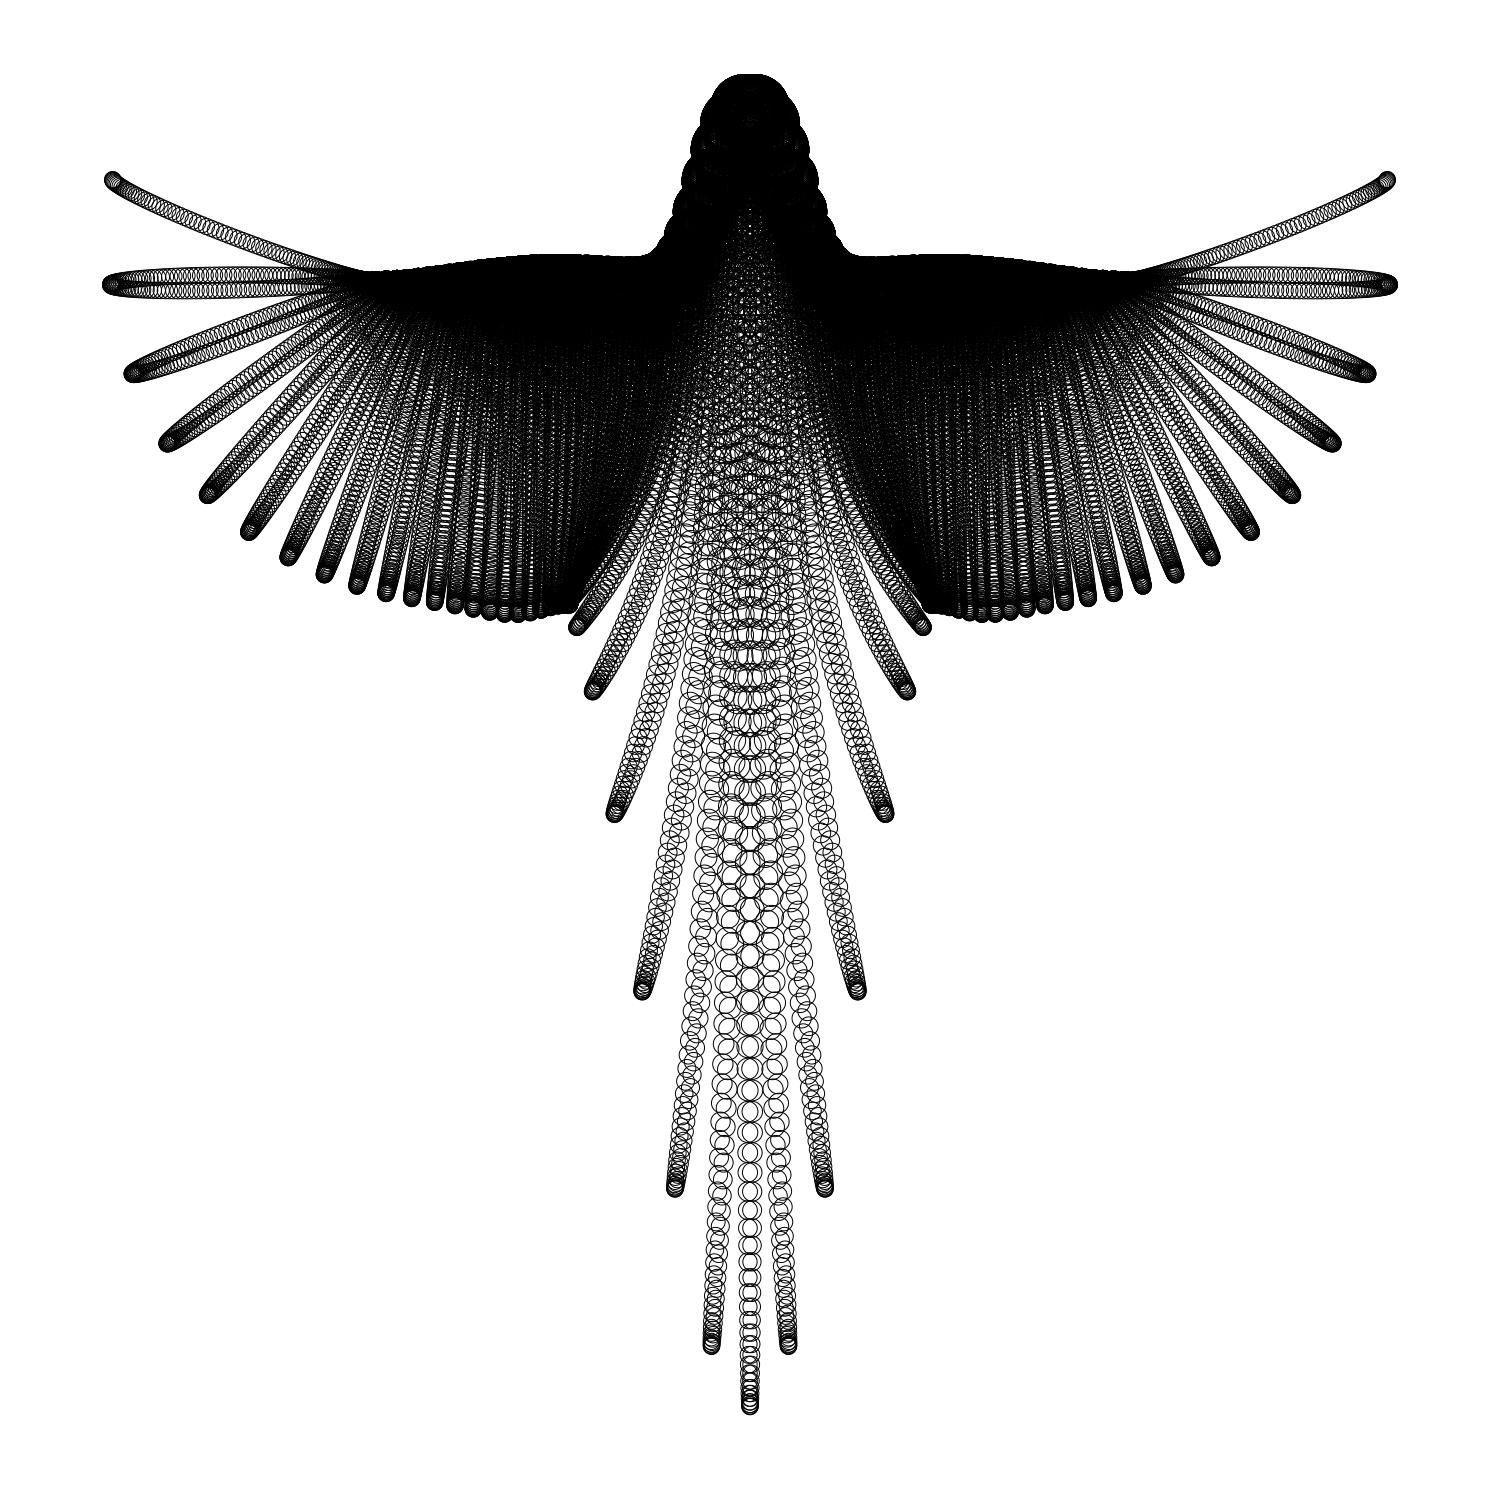 1500x1500 bird in flight drawing bird in flight drawing drawing of a bird